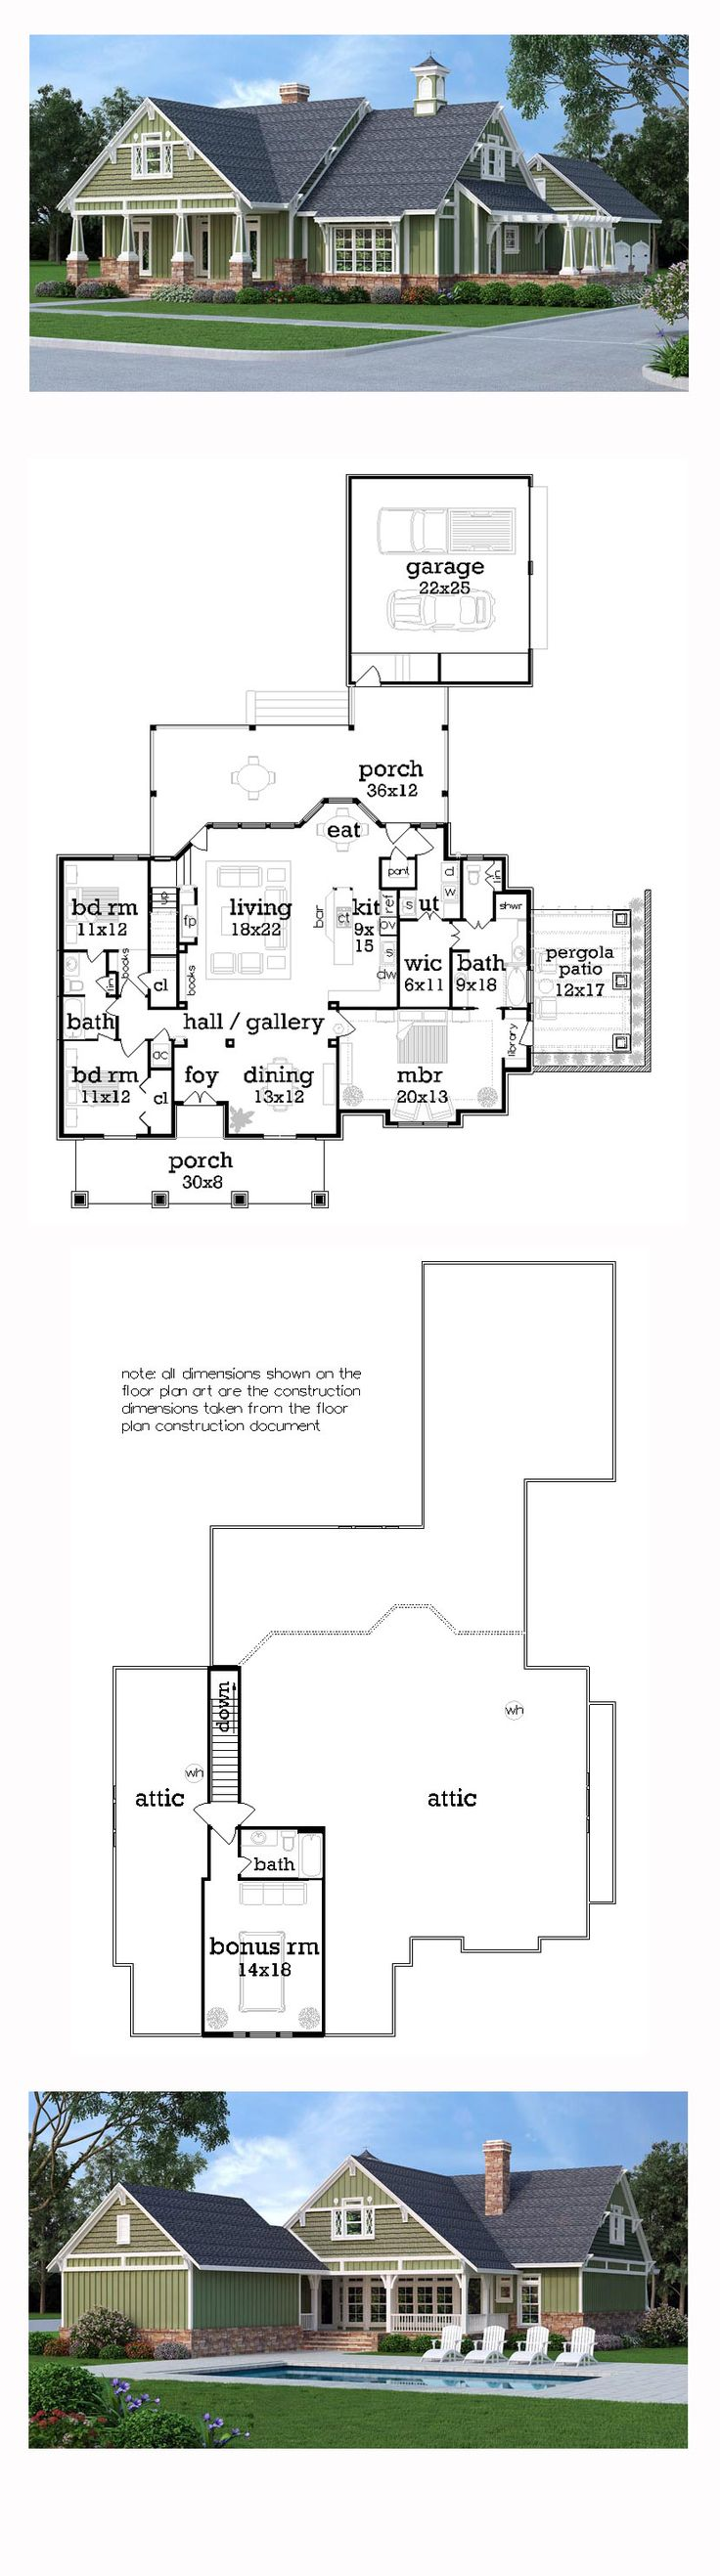 100 best House plans images on Pinterest